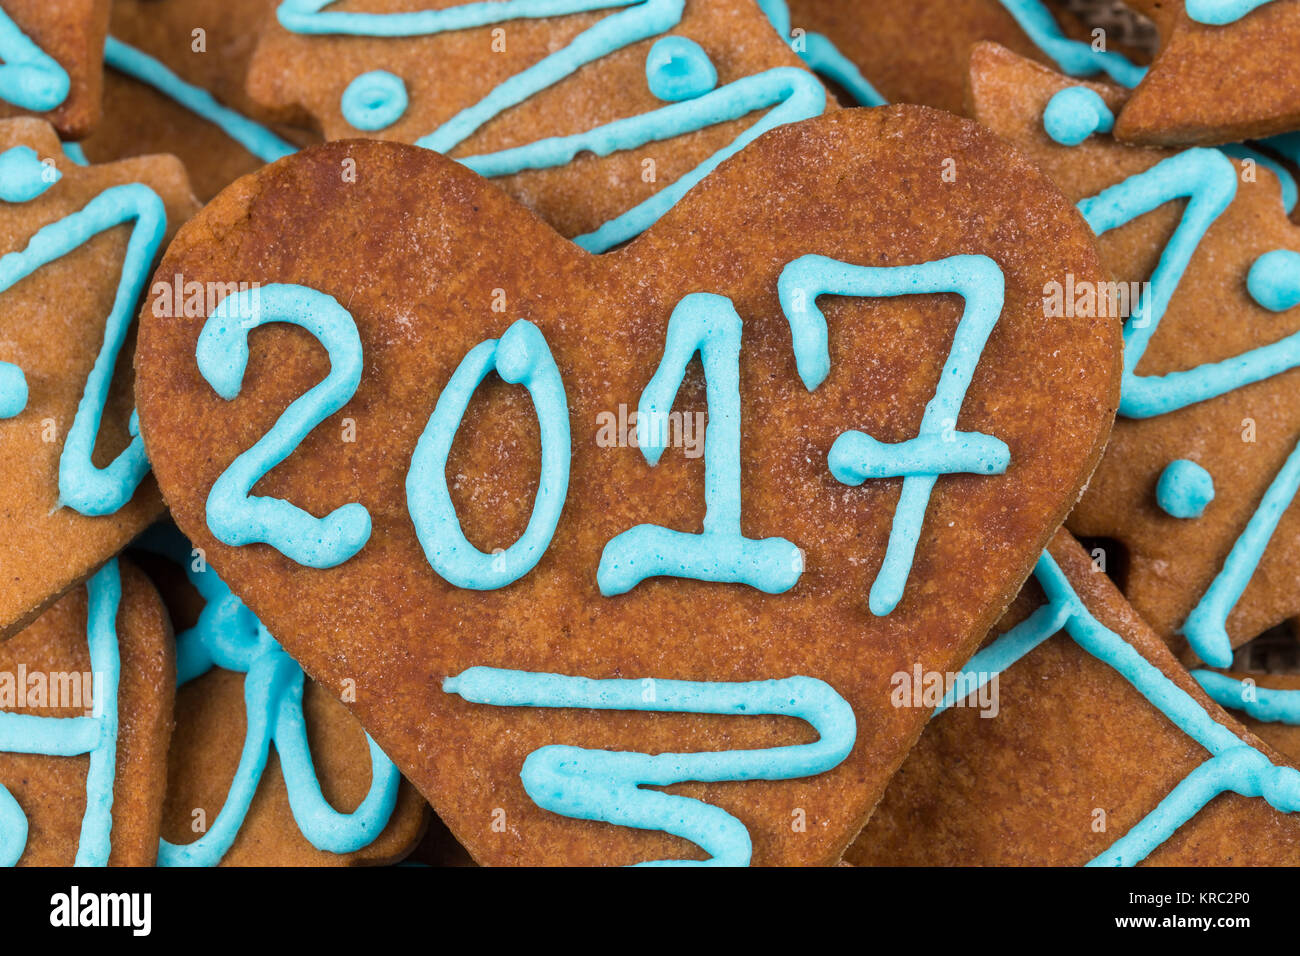 2017 number on cookie - Stock Image